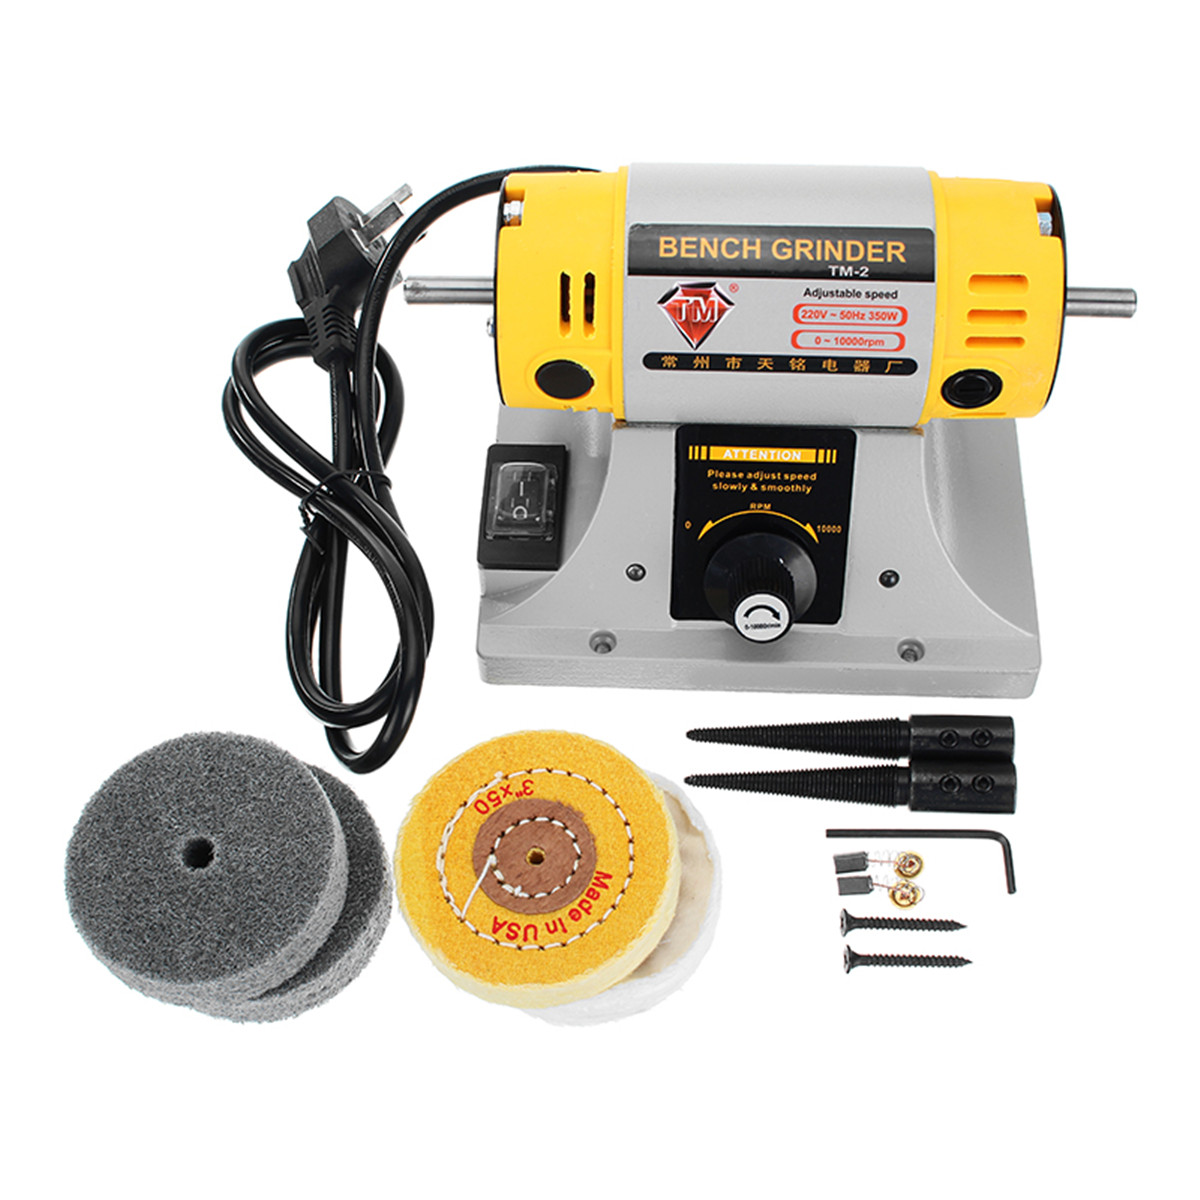 350W 220V Multi-purpose Mini Benchs Grinder Polishing Machine Kit For Jewelry Dental Jewelry Motor Lathe Benchs Grinder Kit Set